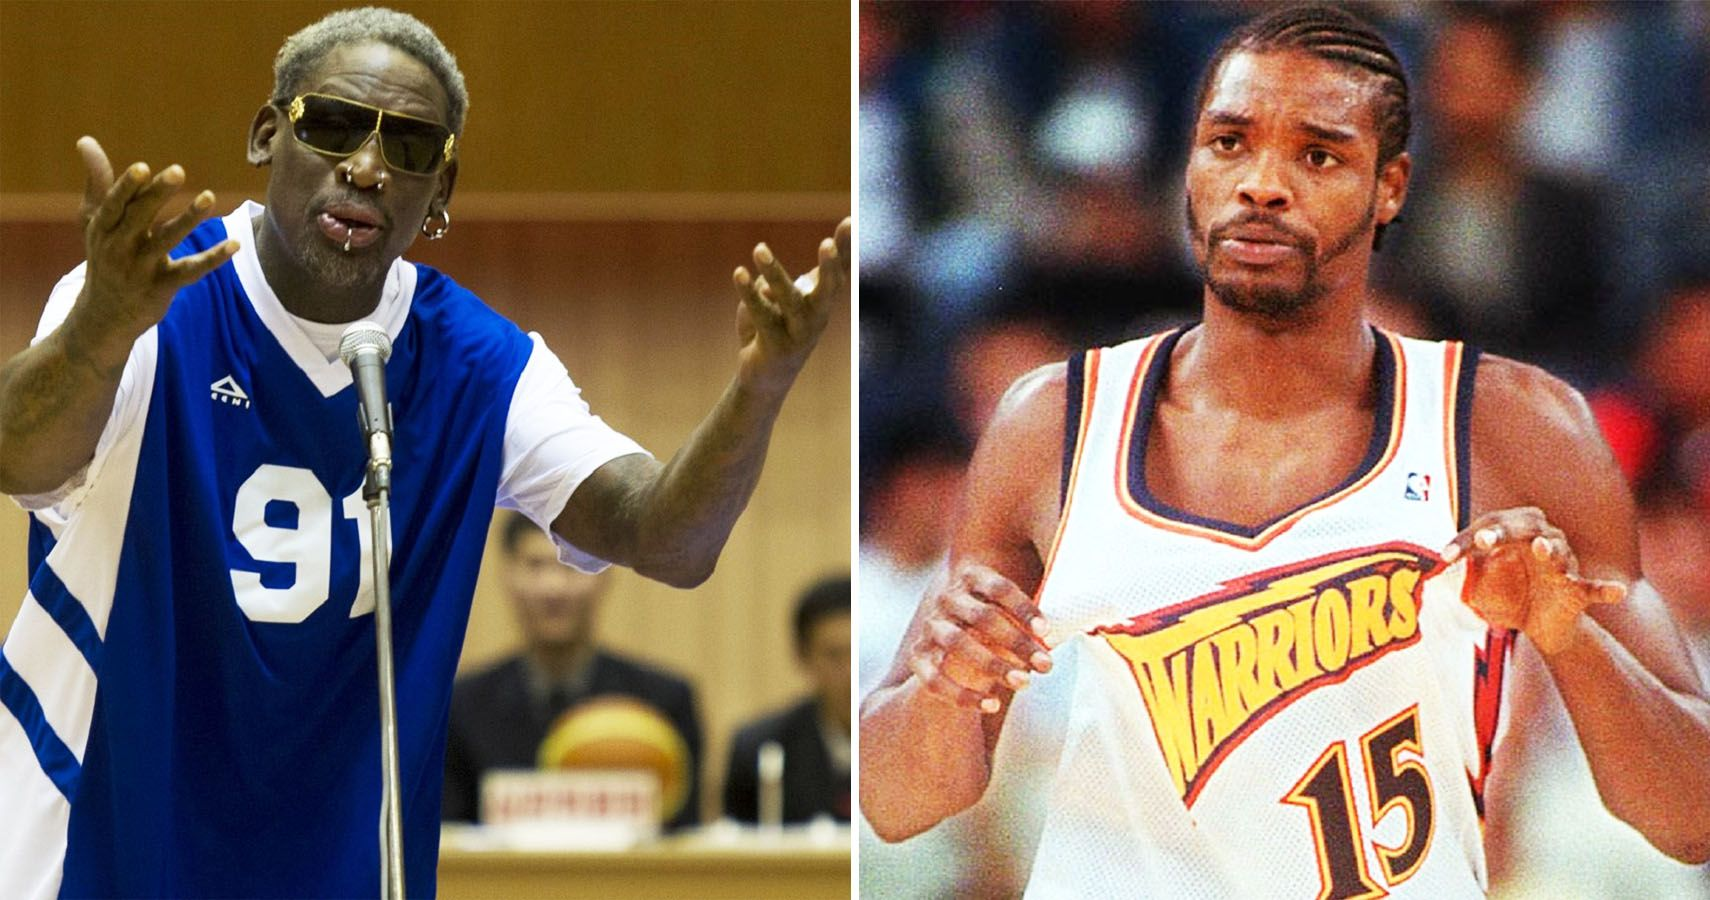 Top 15 Great NBA Players That Were Terrible Human Beings